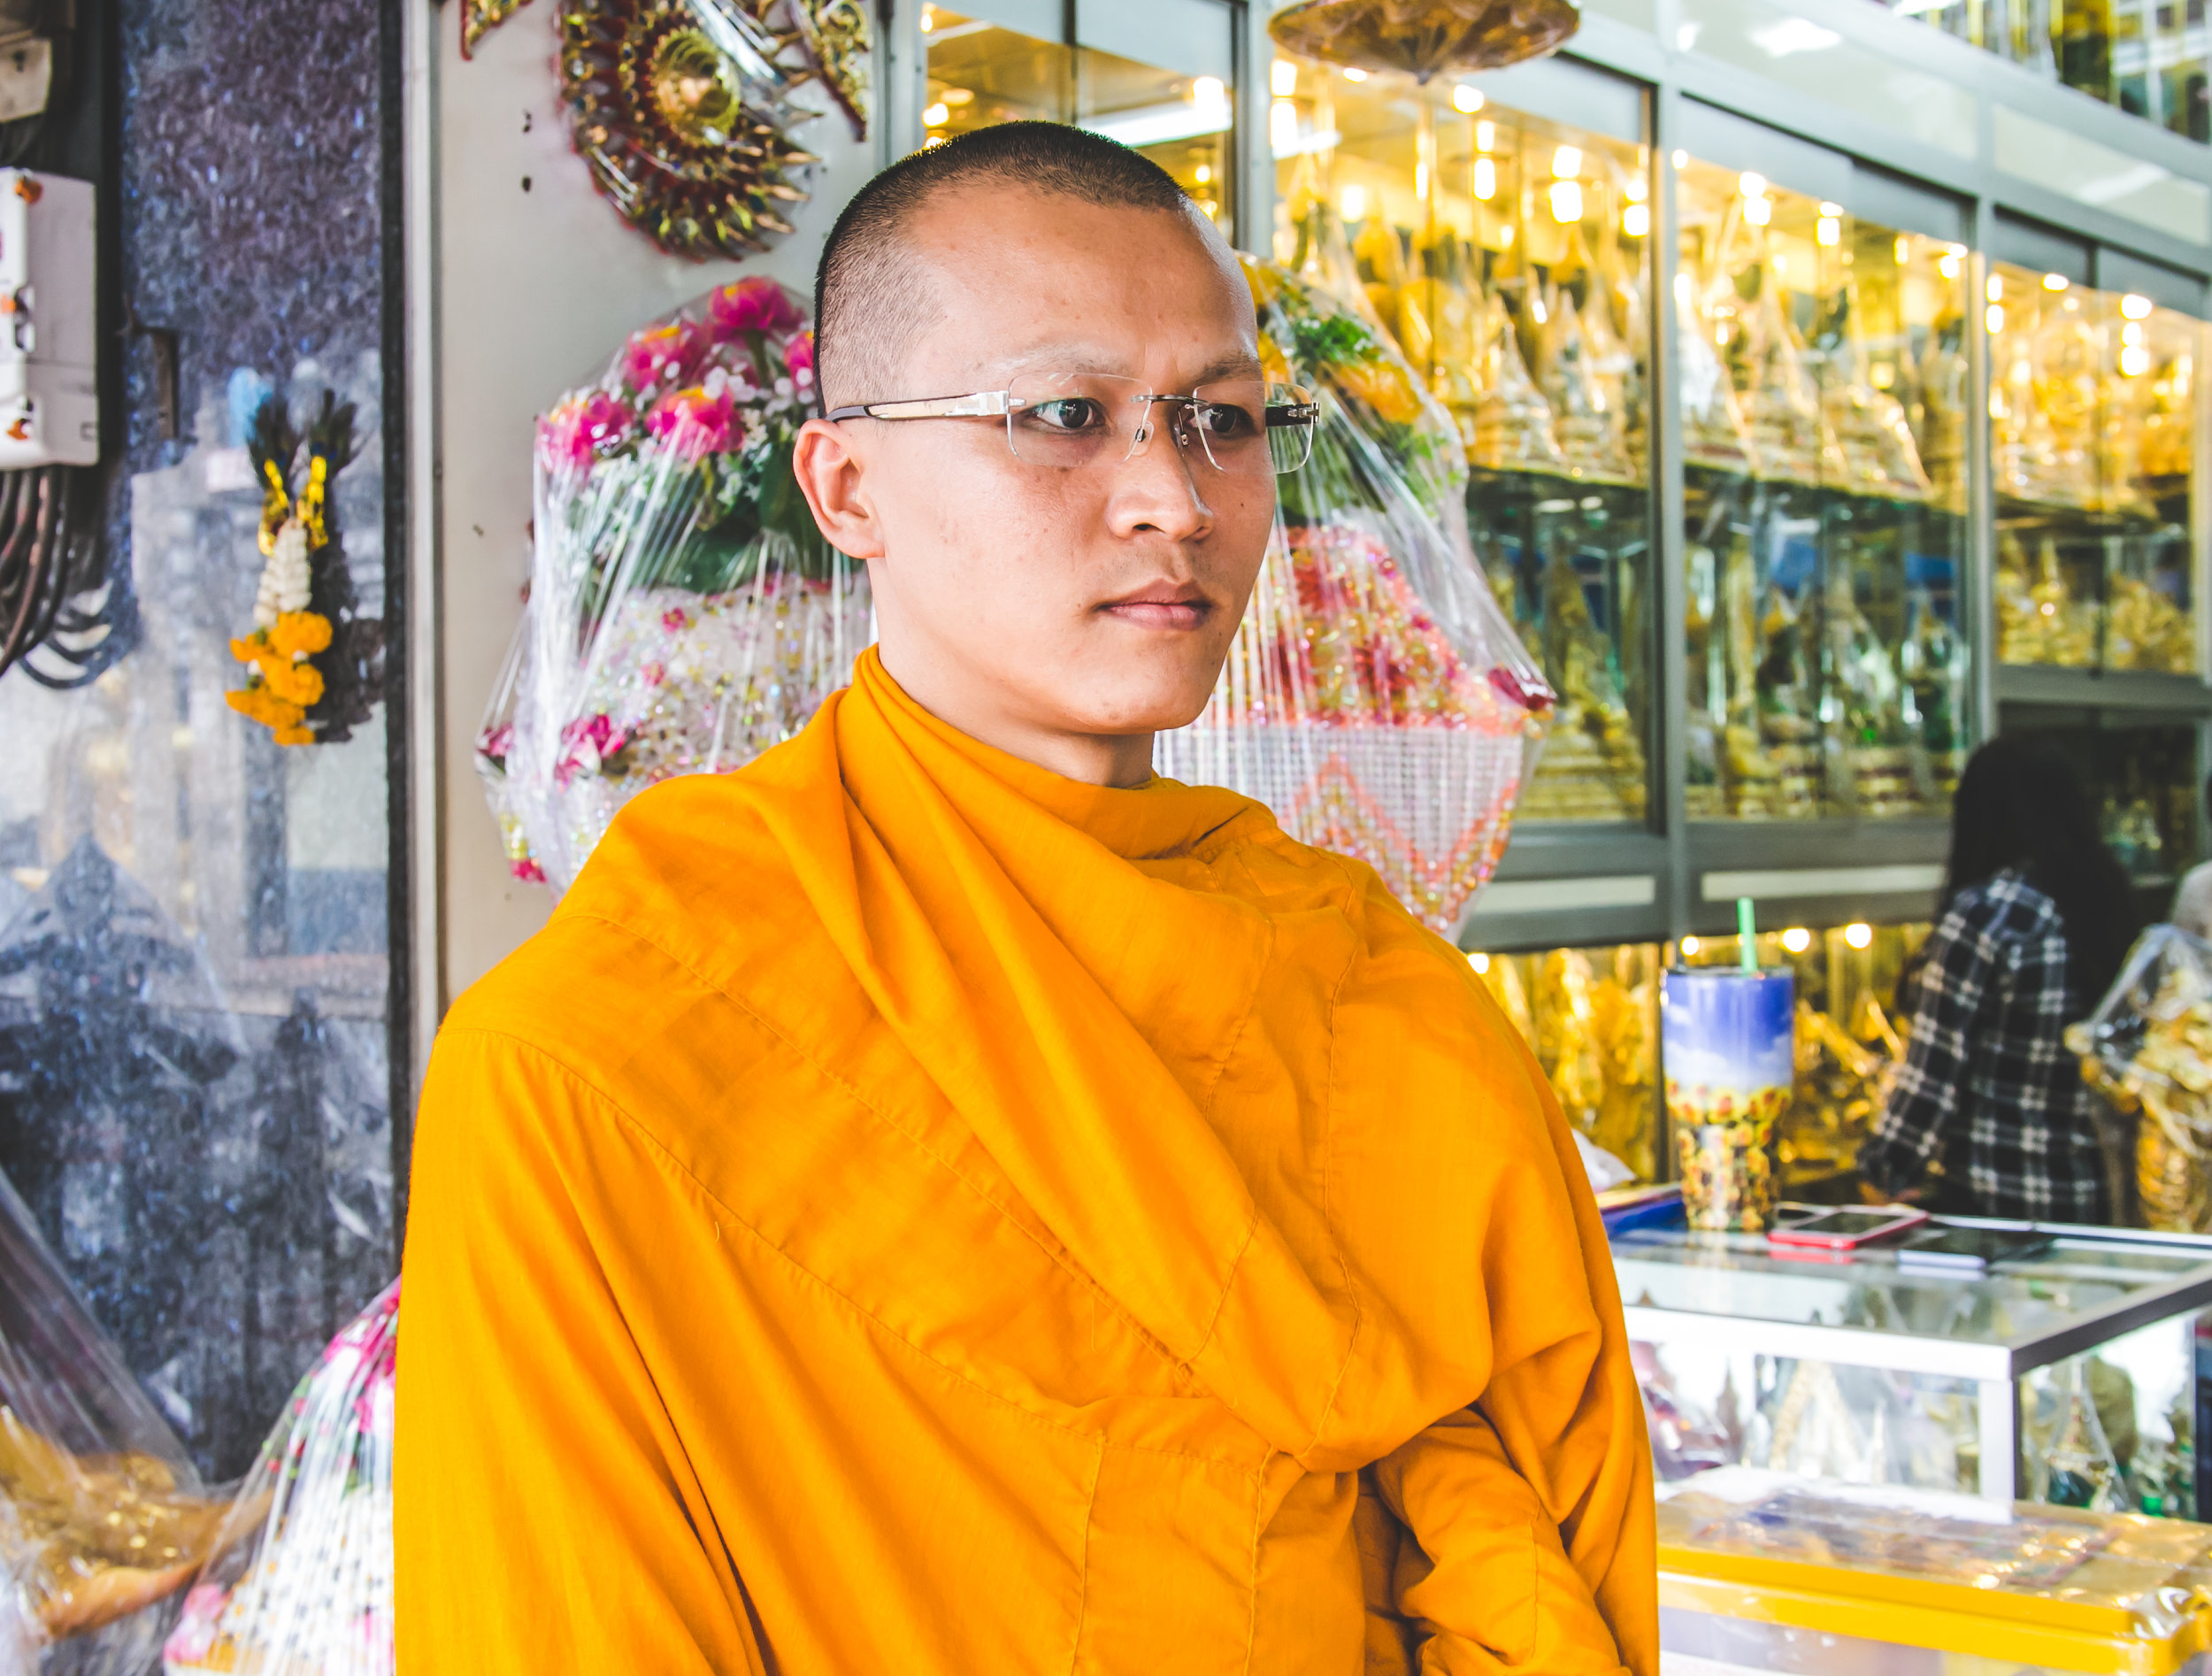 Phijit, a 32 year old Thai monk, stands outside a shop selling religious adornments, Buddha statues, and traditional robes. Phijit has been practicing for 12 years. There are over 300,000 monks, and 32,000 monasteries in Thailand. To become a monk you must be at least 20 years old, a man, and free of debt and disease. This lifestyle requires a great deal of discipline - as monks must abide by very specific set of rules (227 to be exact). These include not touching woman (even their mother), never driving a vehicle, and practicing chants, meditation, and worship techniques up to 10 hours a day.